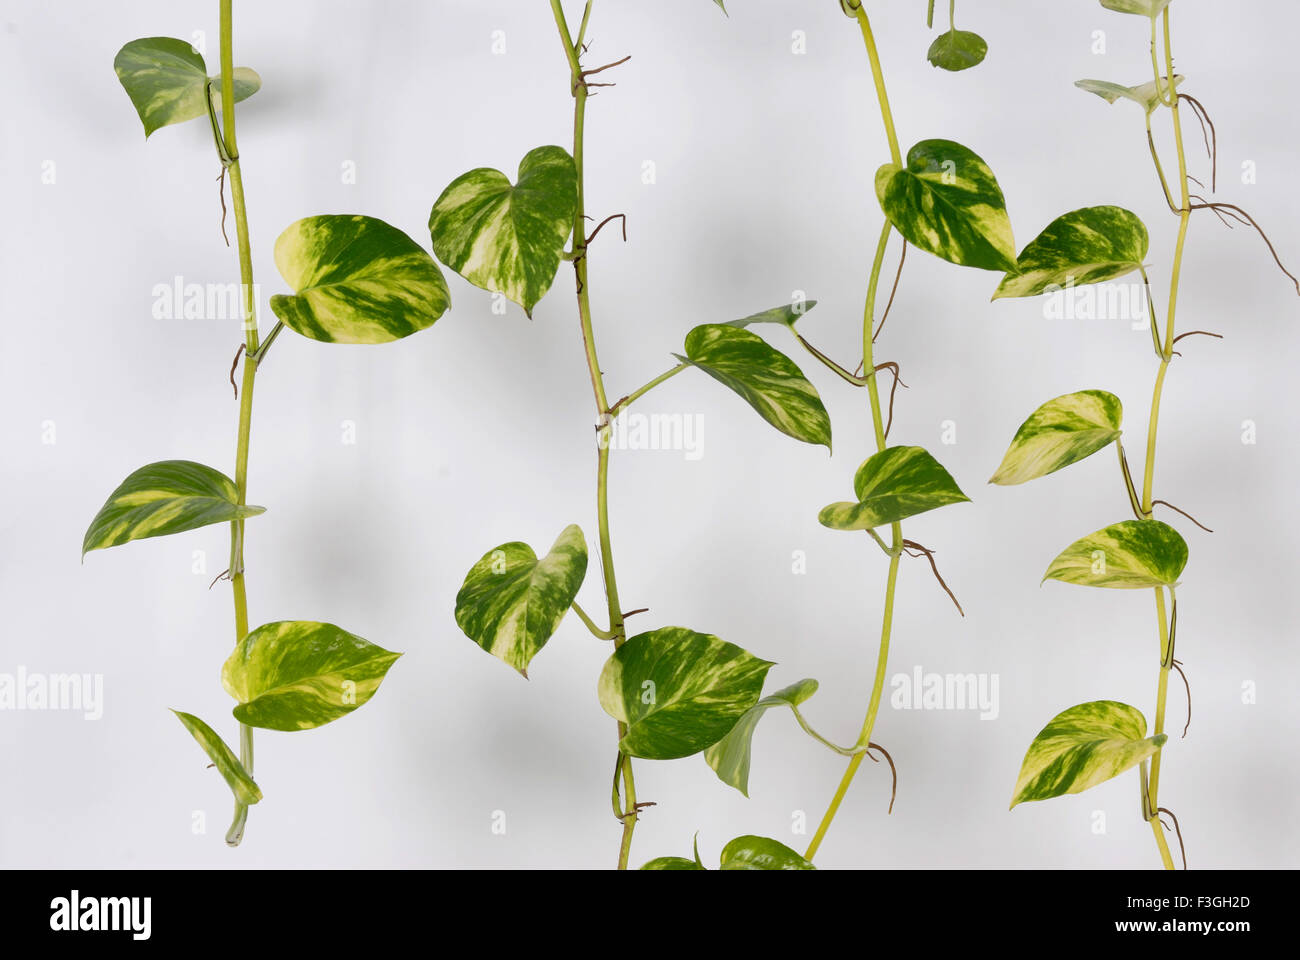 Many plant symbolize growth of wealth stock photo 88260437 alamy many plant symbolize growth of wealth biocorpaavc Gallery